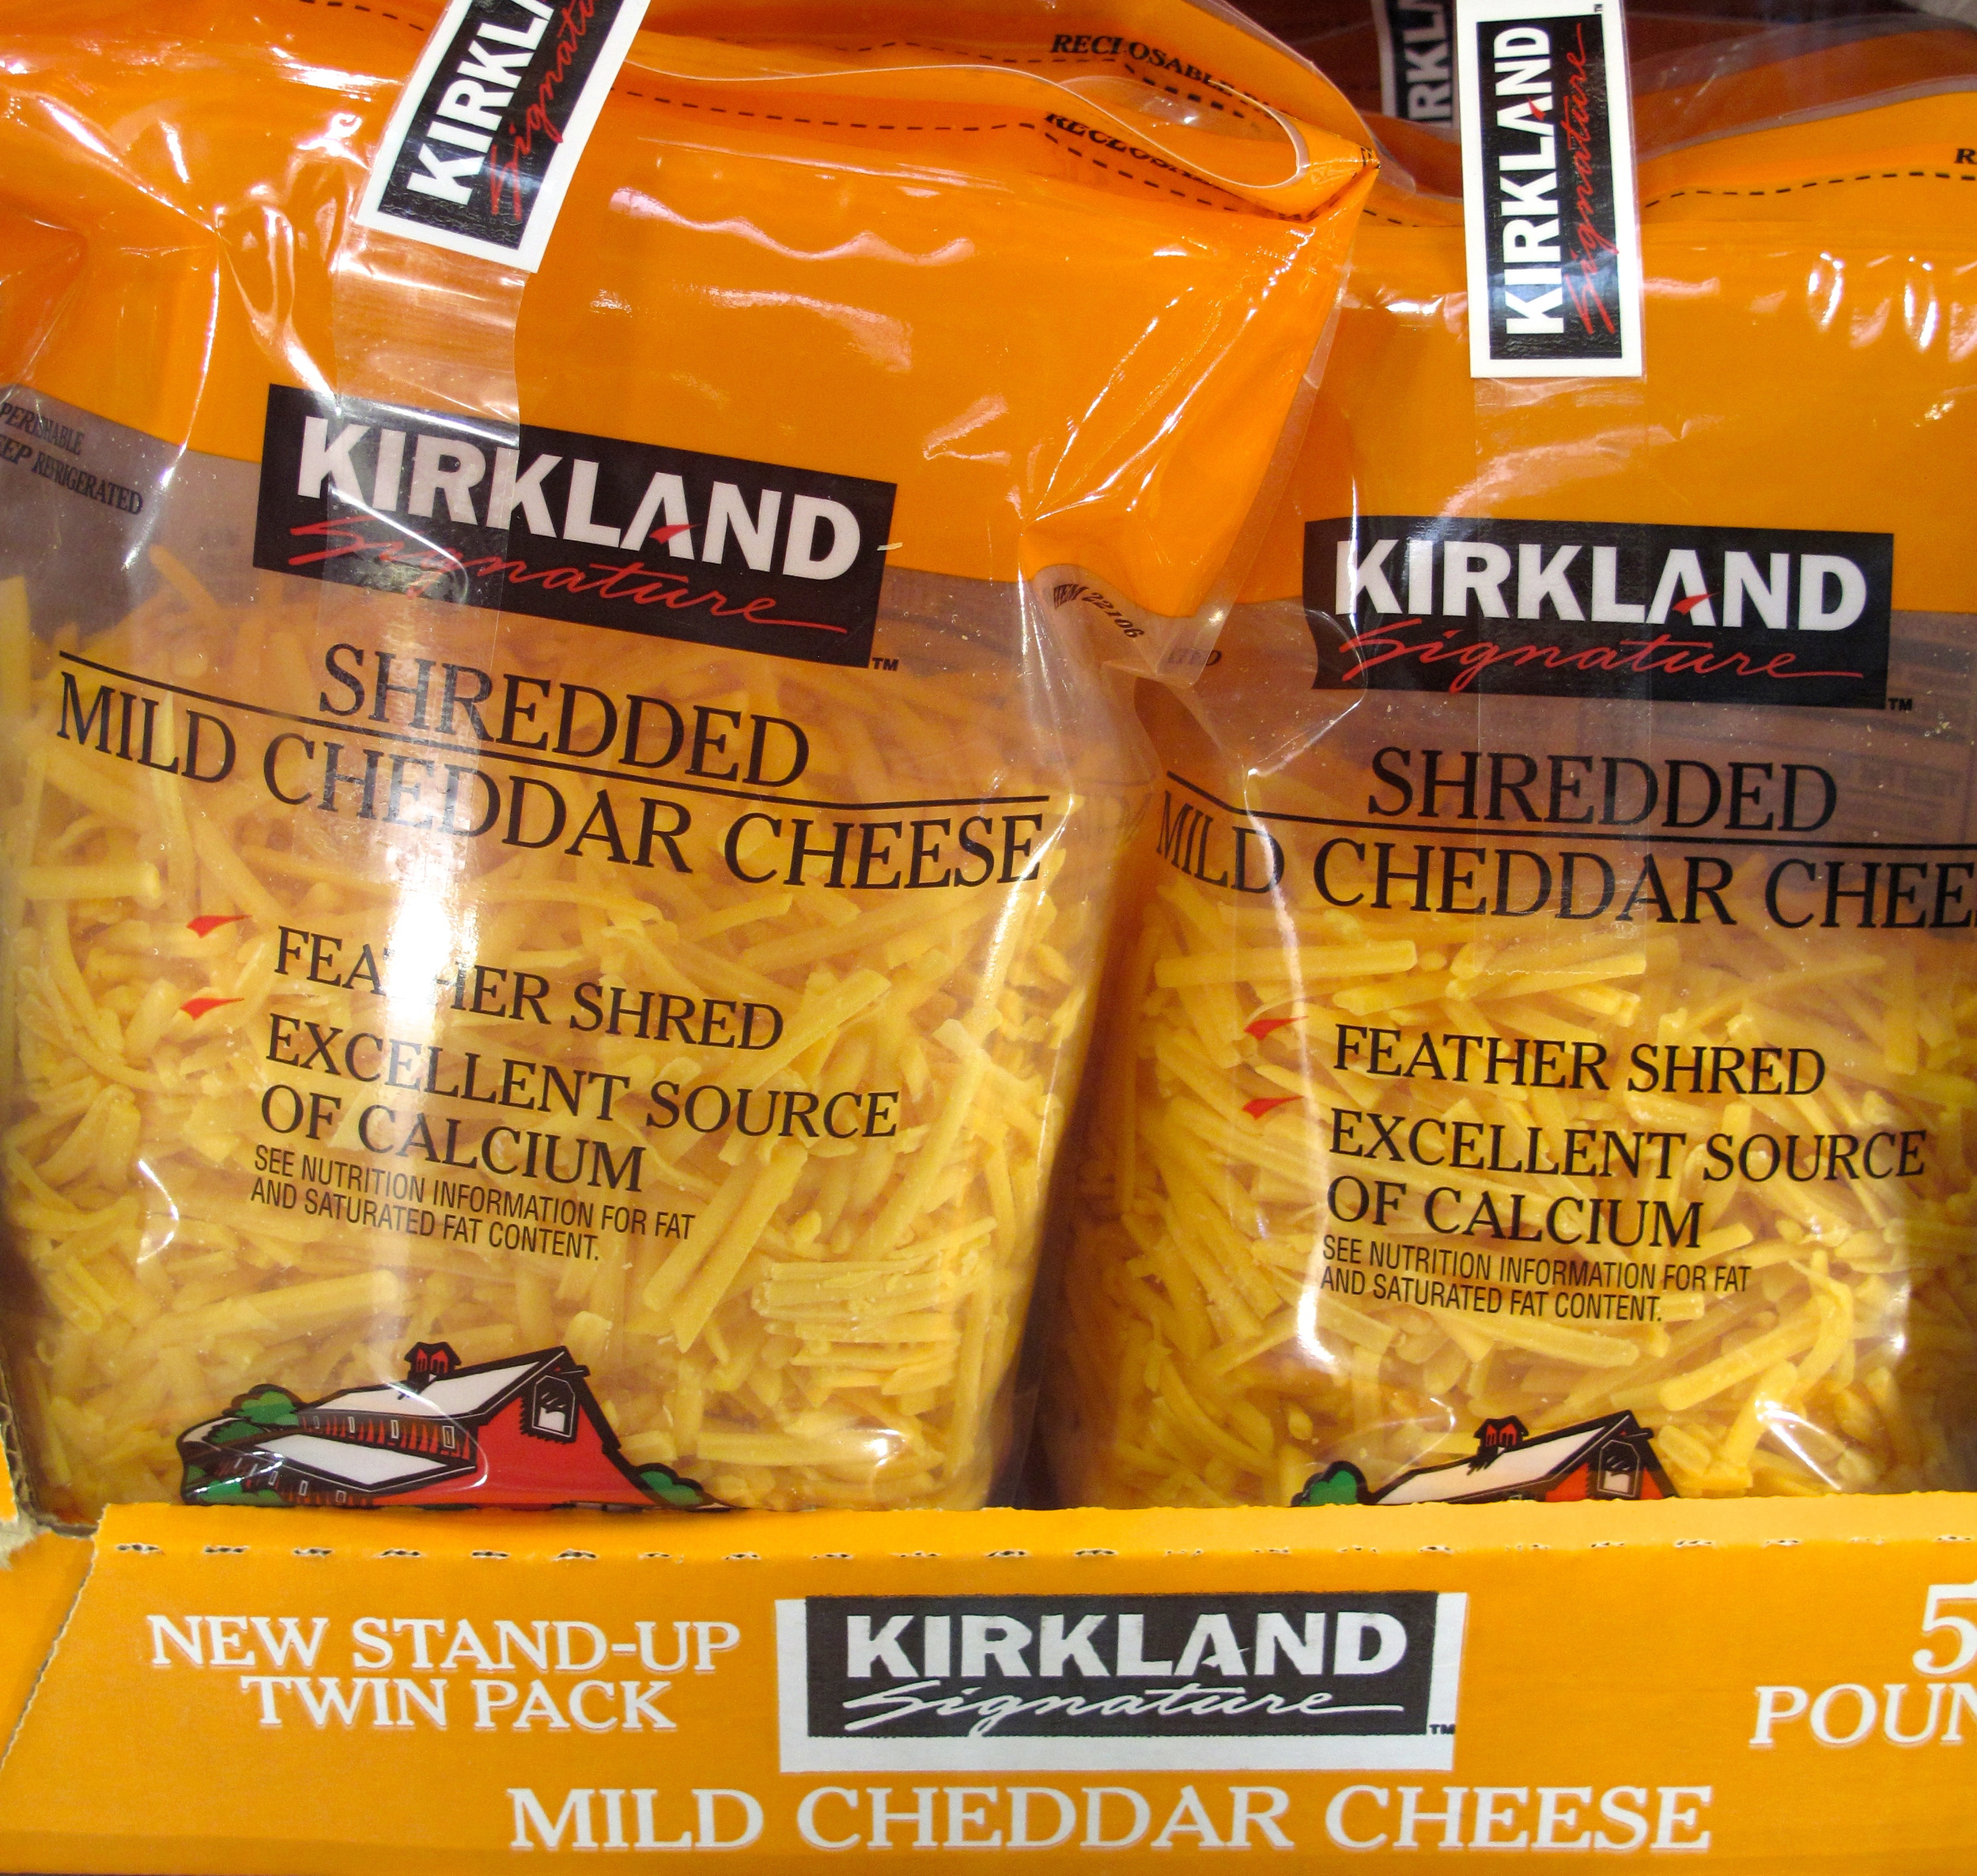 Weird American orange pre-grated cheese